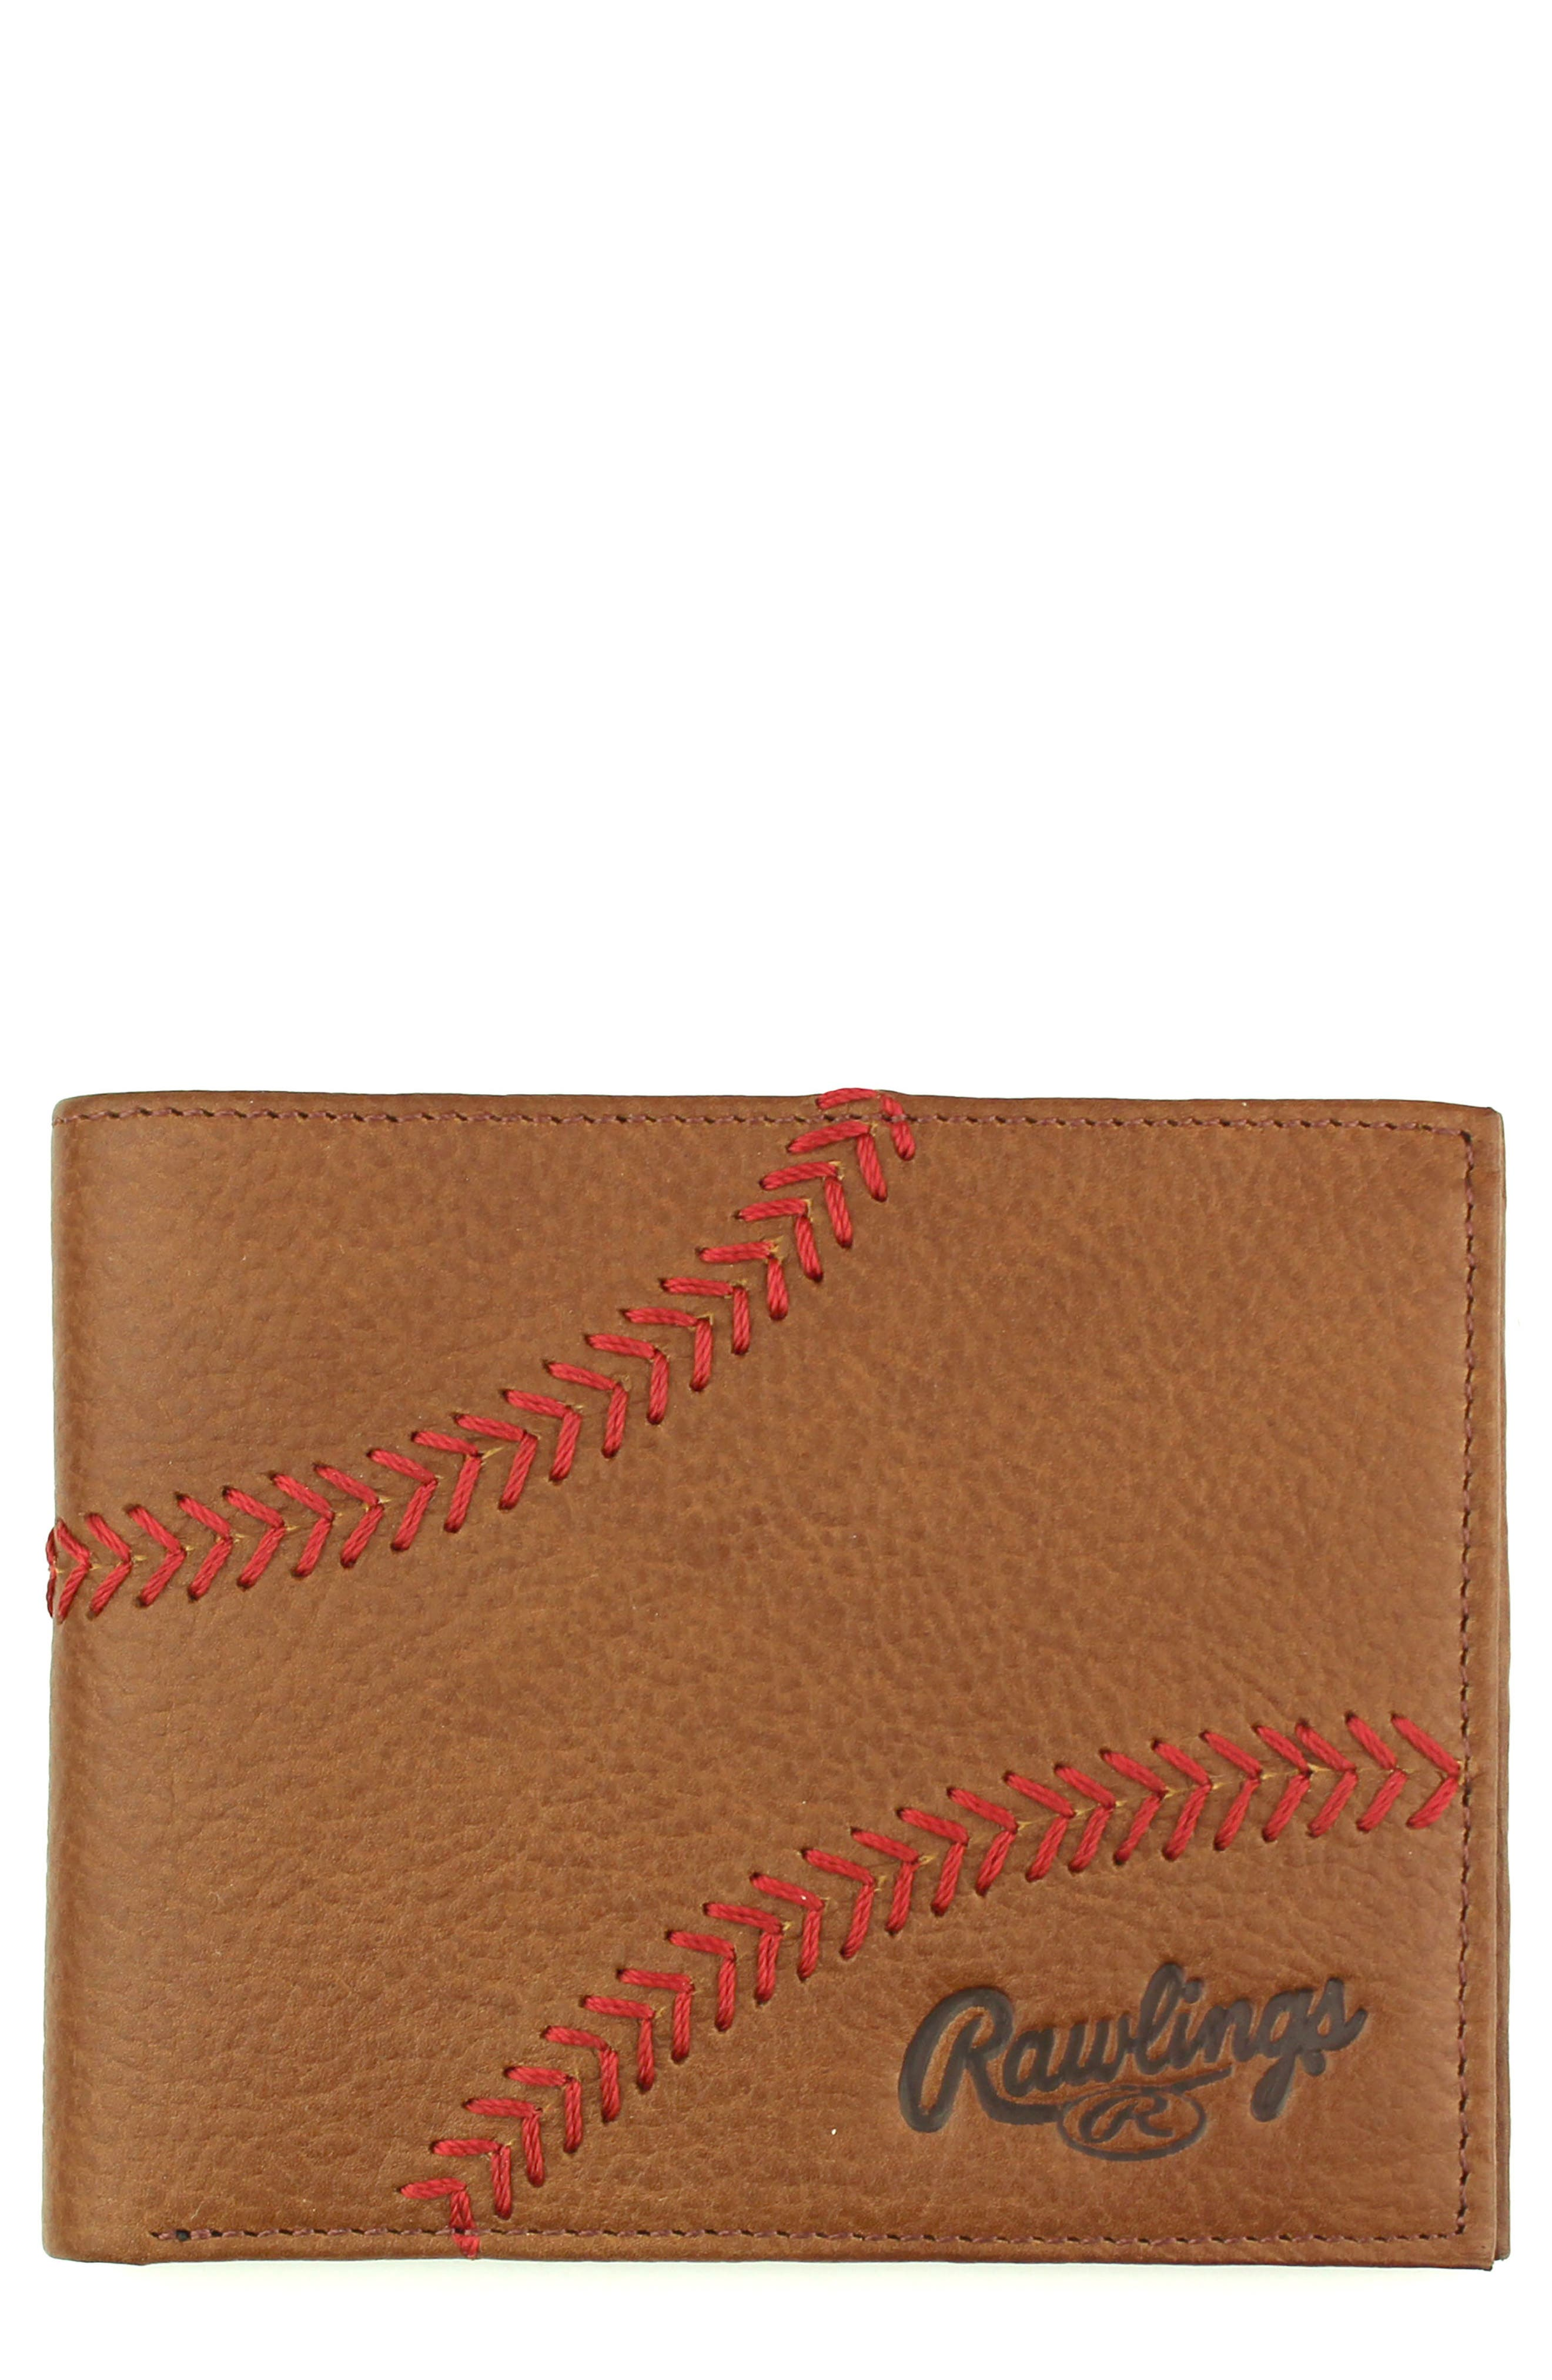 Home Run Bifold Leather Wallet,                             Main thumbnail 1, color,                             Cognac